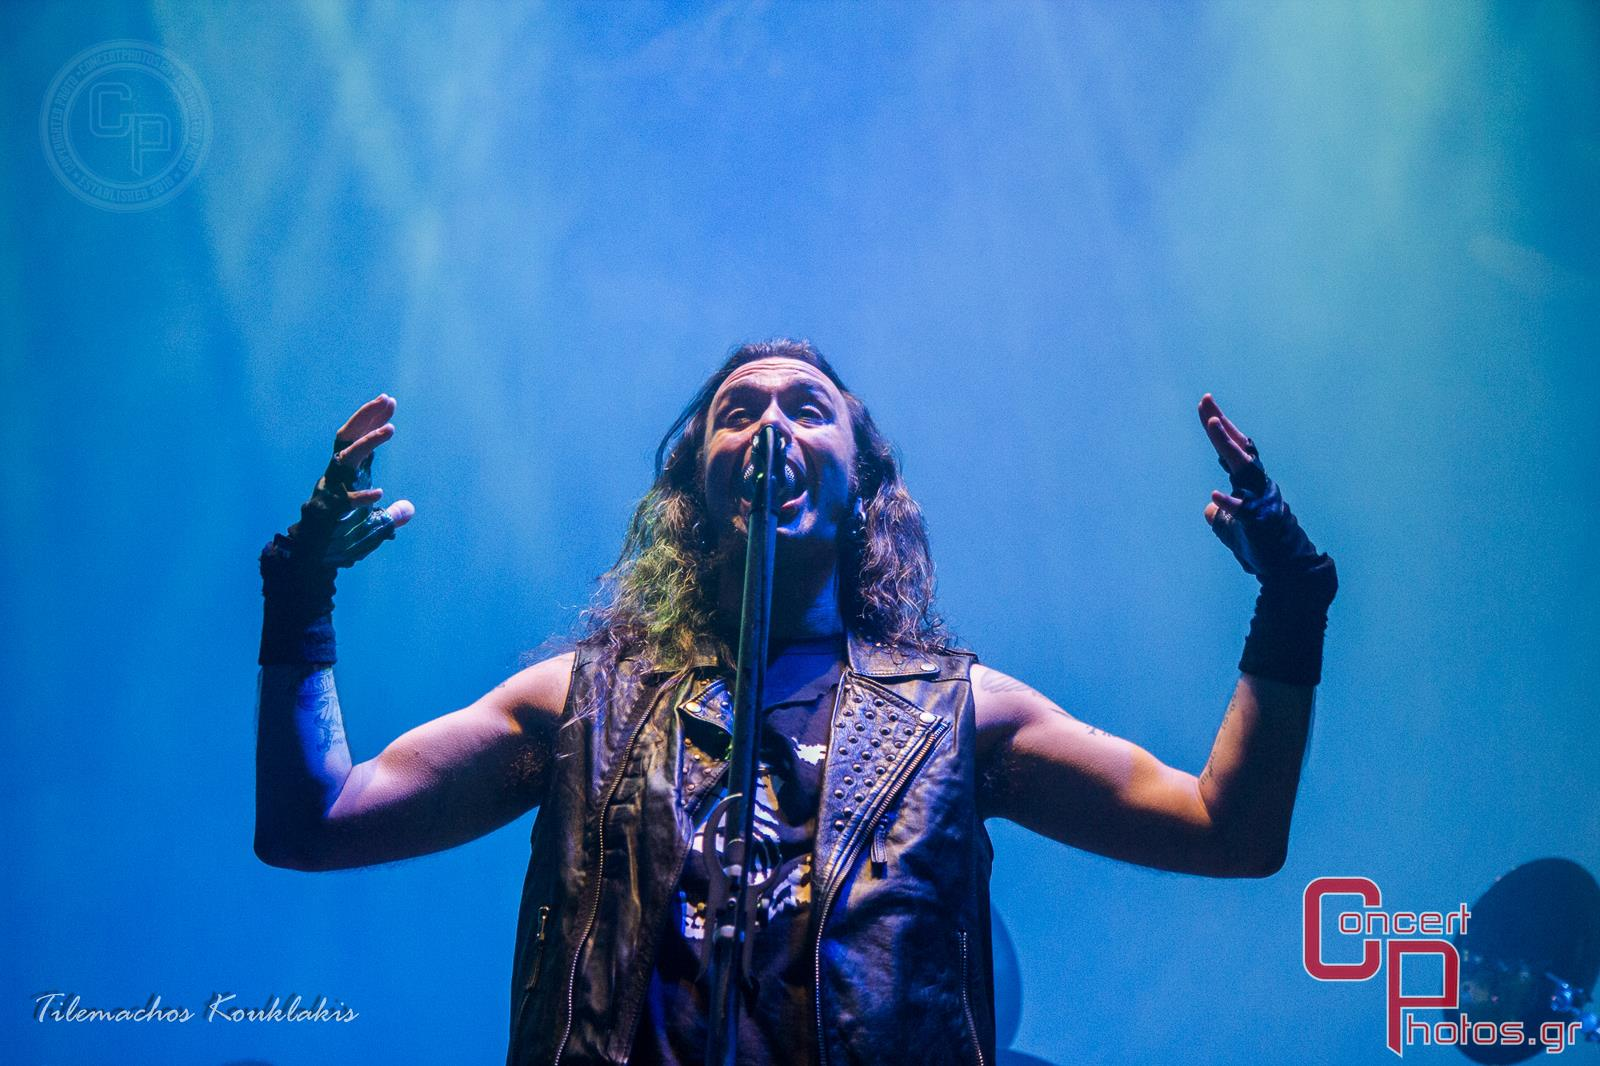 Moonspell-Moonspell photographer:  - IMG_5819